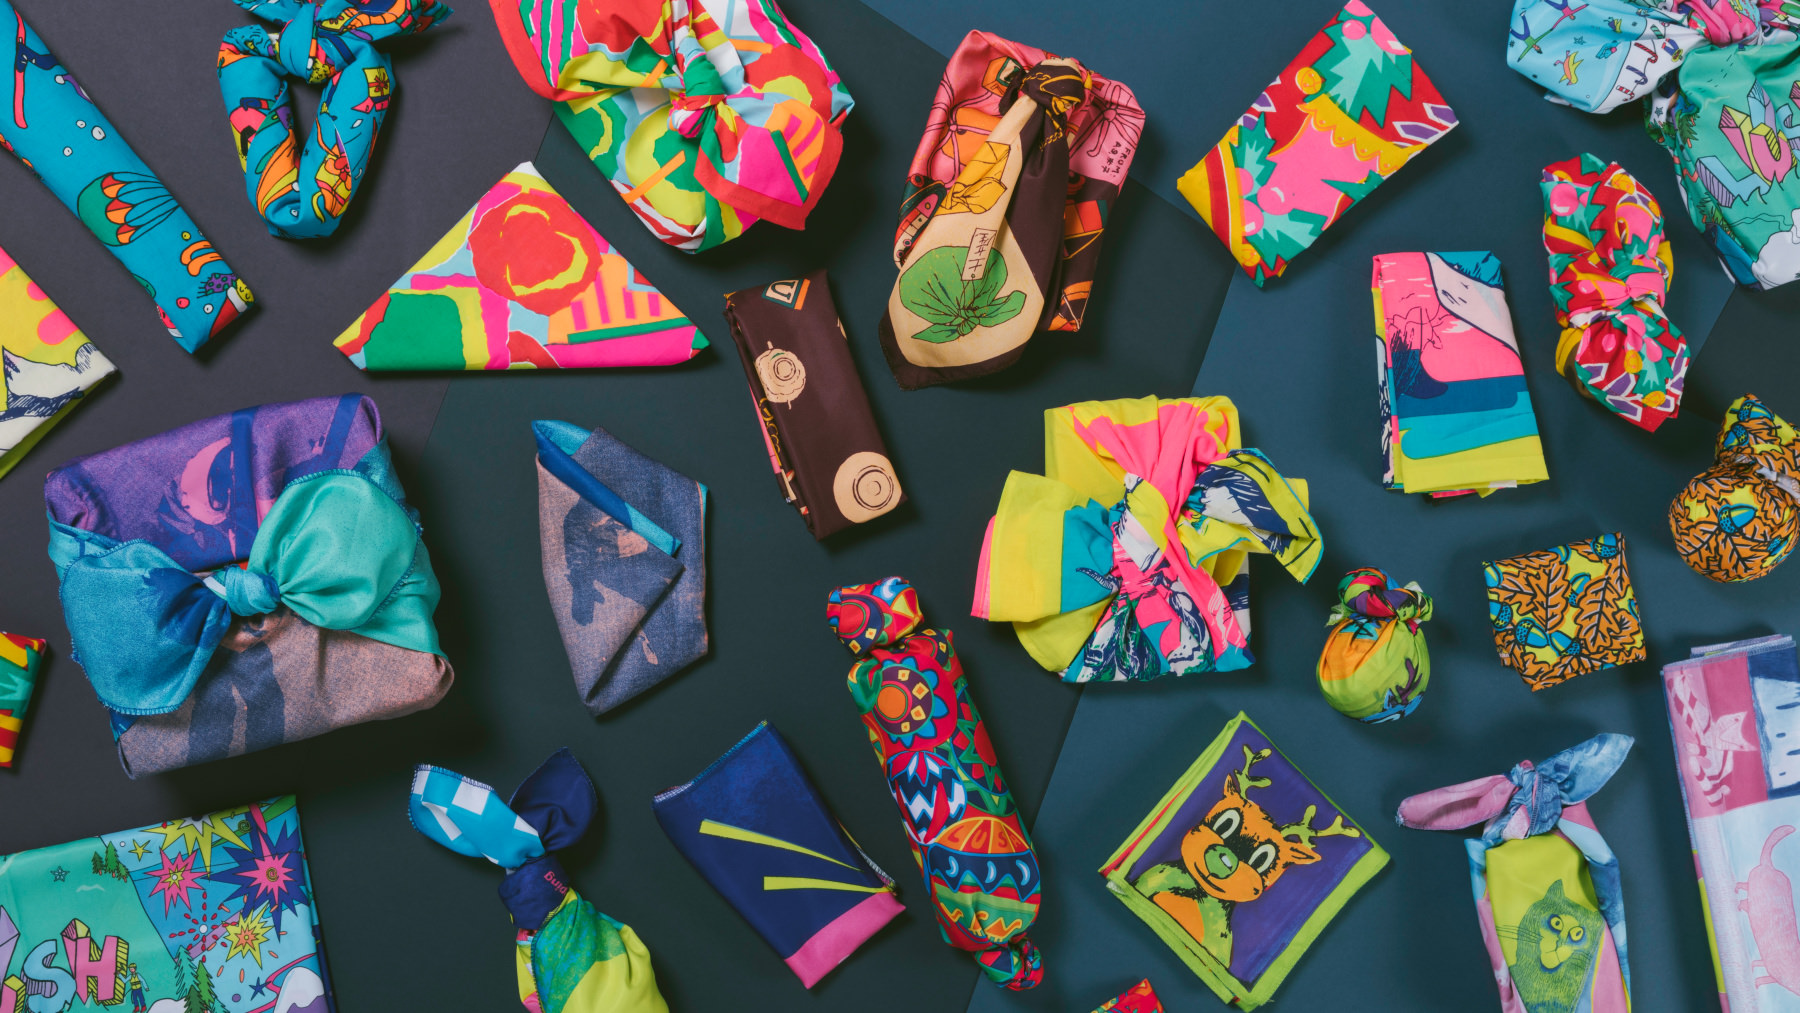 A selection of gifts wrapped in a variety of colourful knot wraps